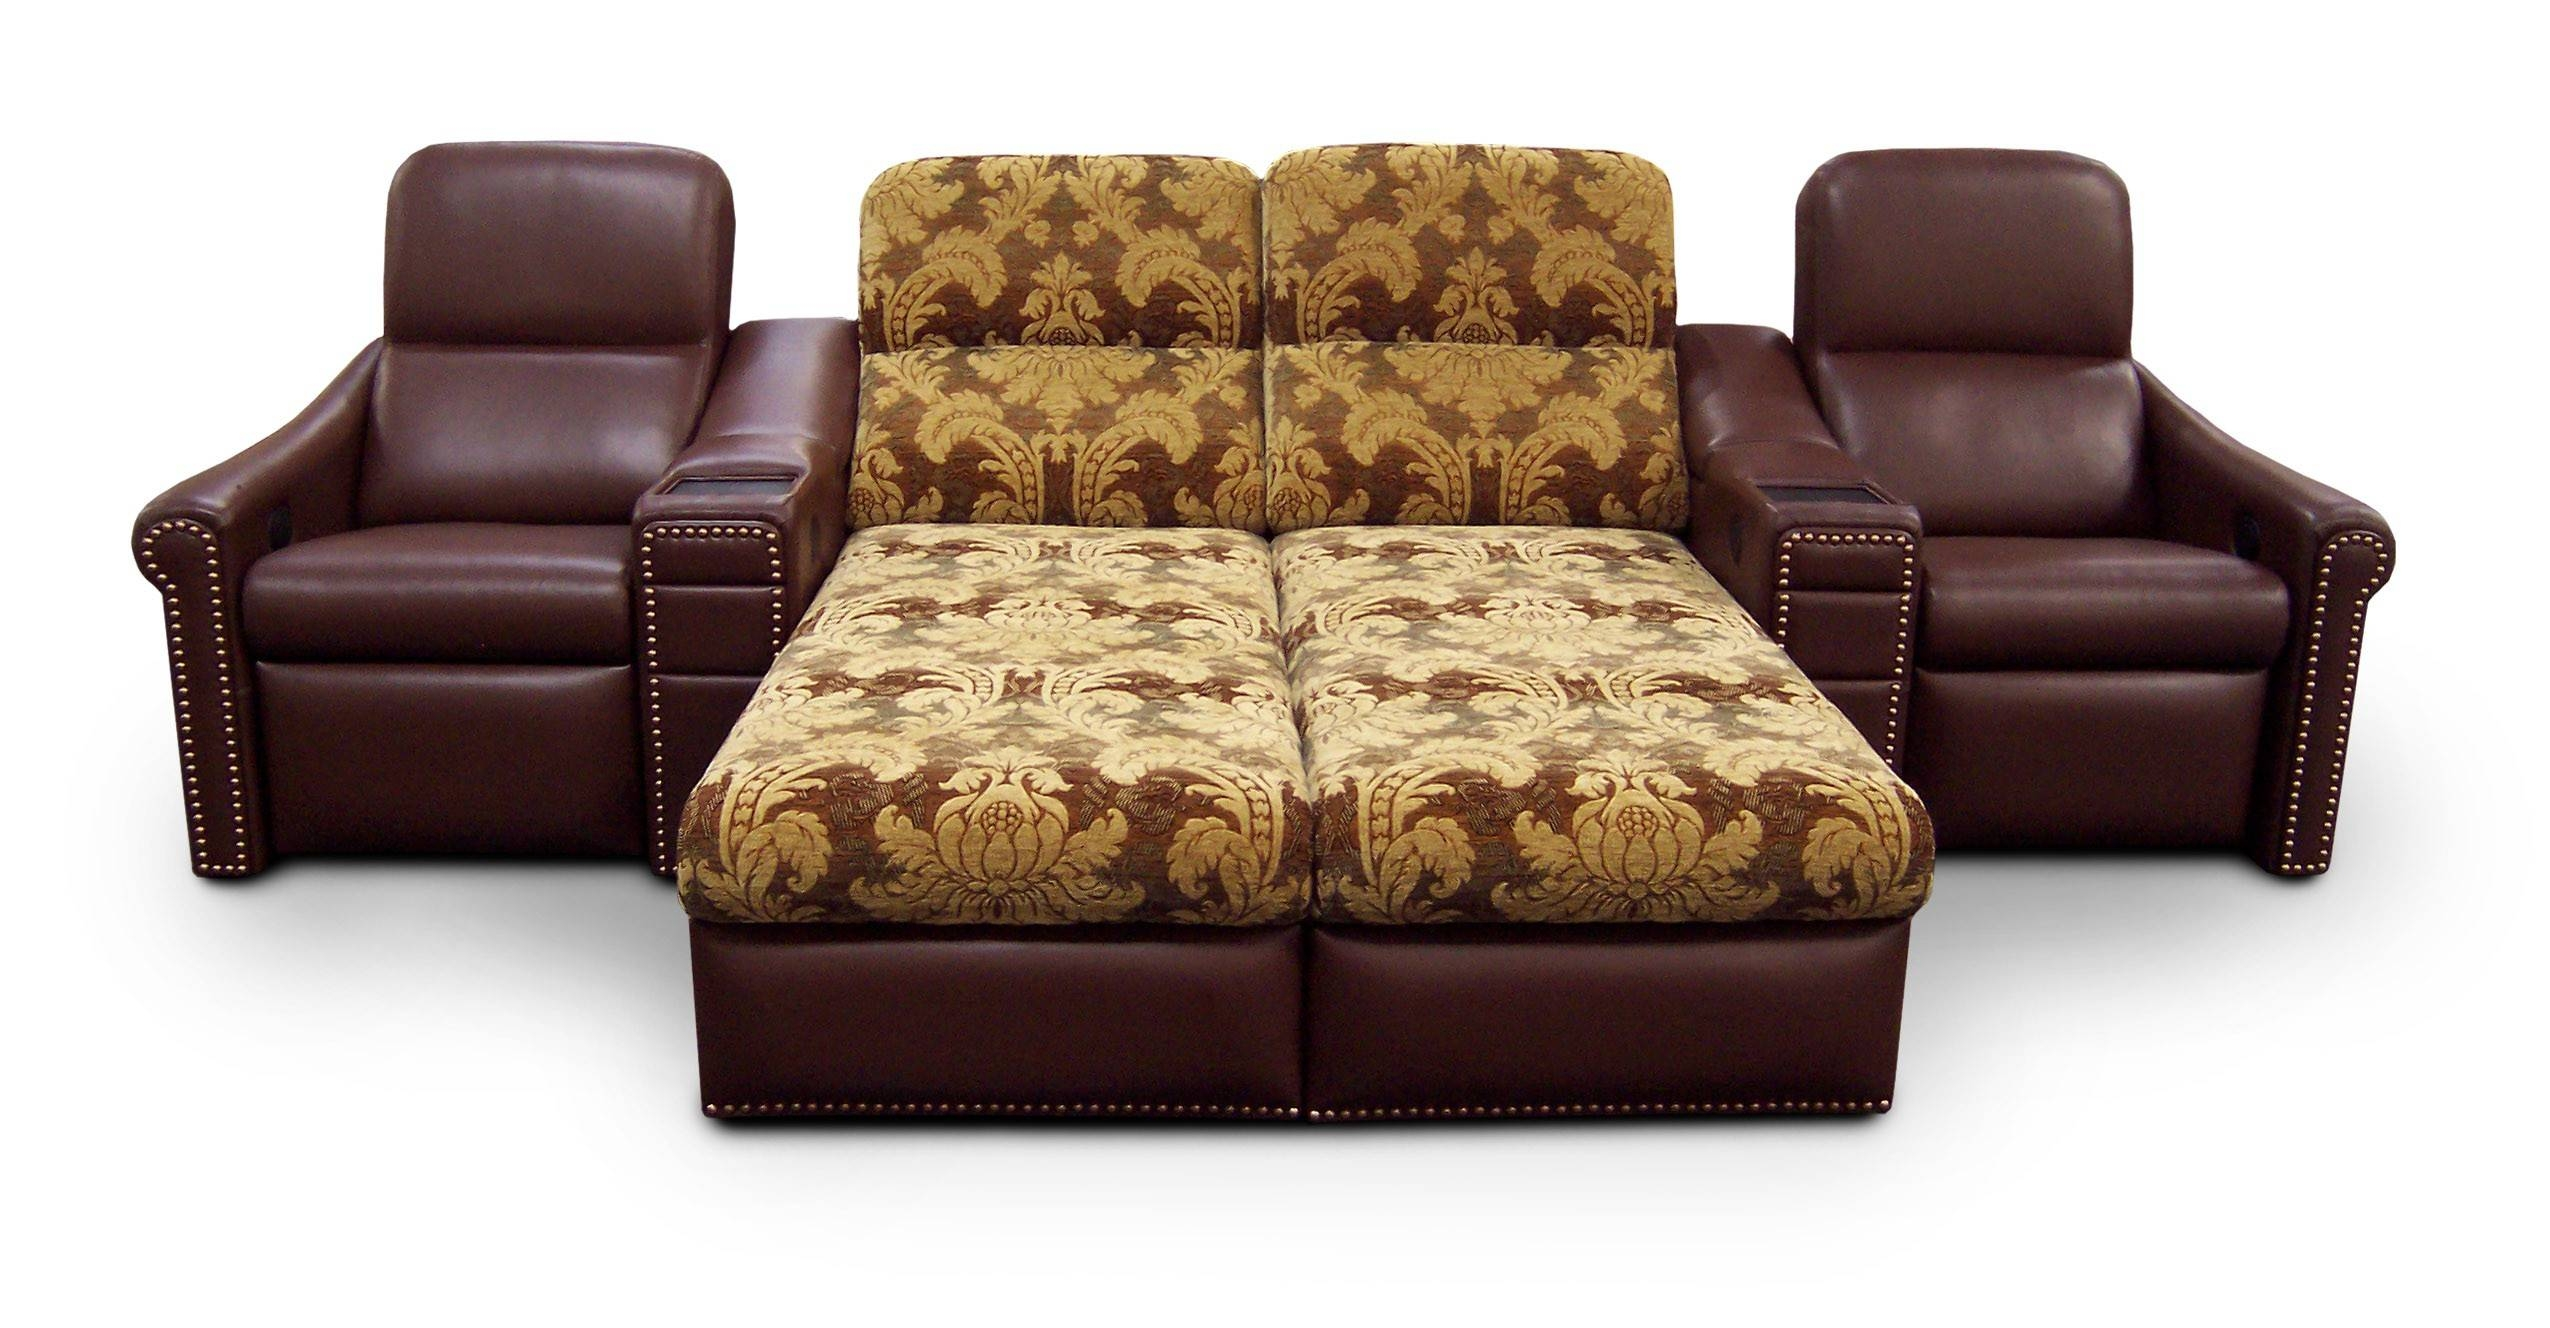 Faux Leather Sleeper Sofa Queen | Centerfieldbar for Faux Leather Sleeper Sofas (Image 5 of 15)